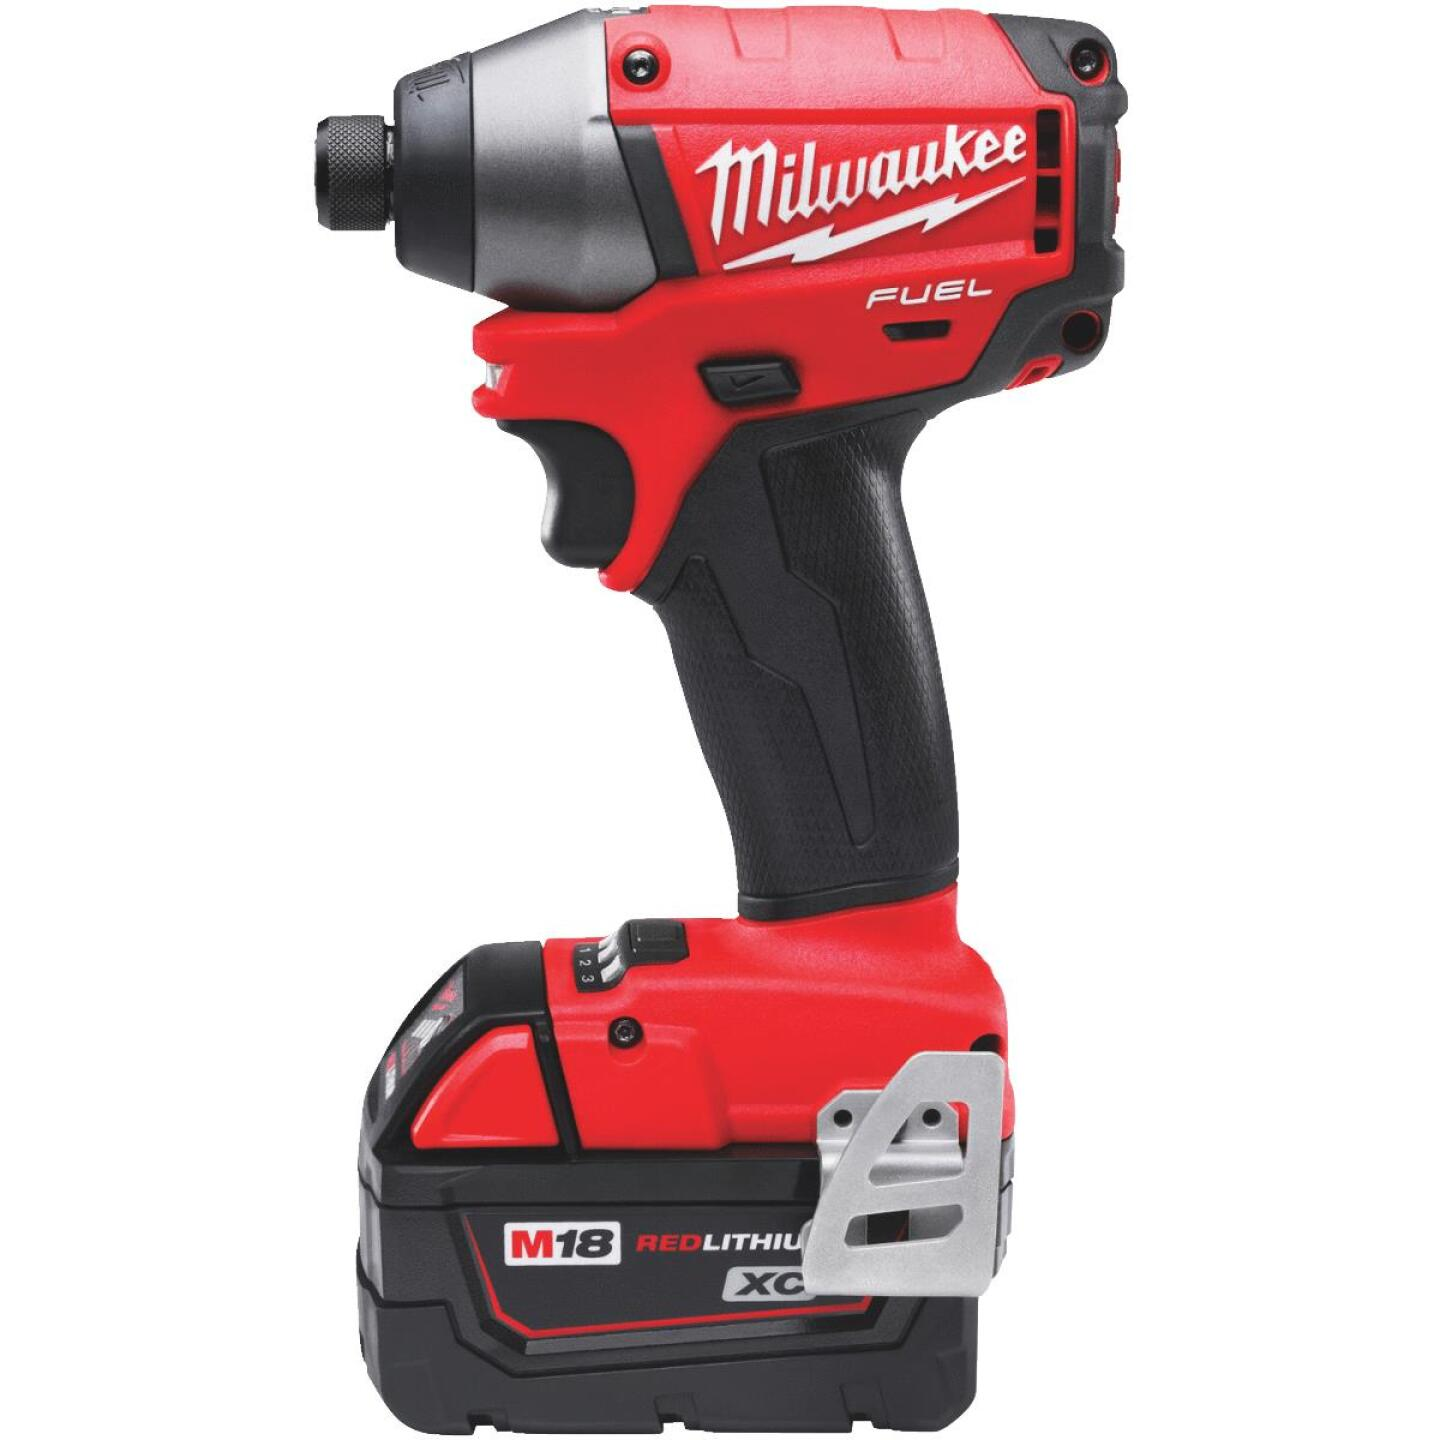 Milwaukee M18 FUEL 18 Volt XC Lithium-Ion Brushless 1/4 In. Hex Cordless Impact Driver Kit (with 2 Batteries) Image 1